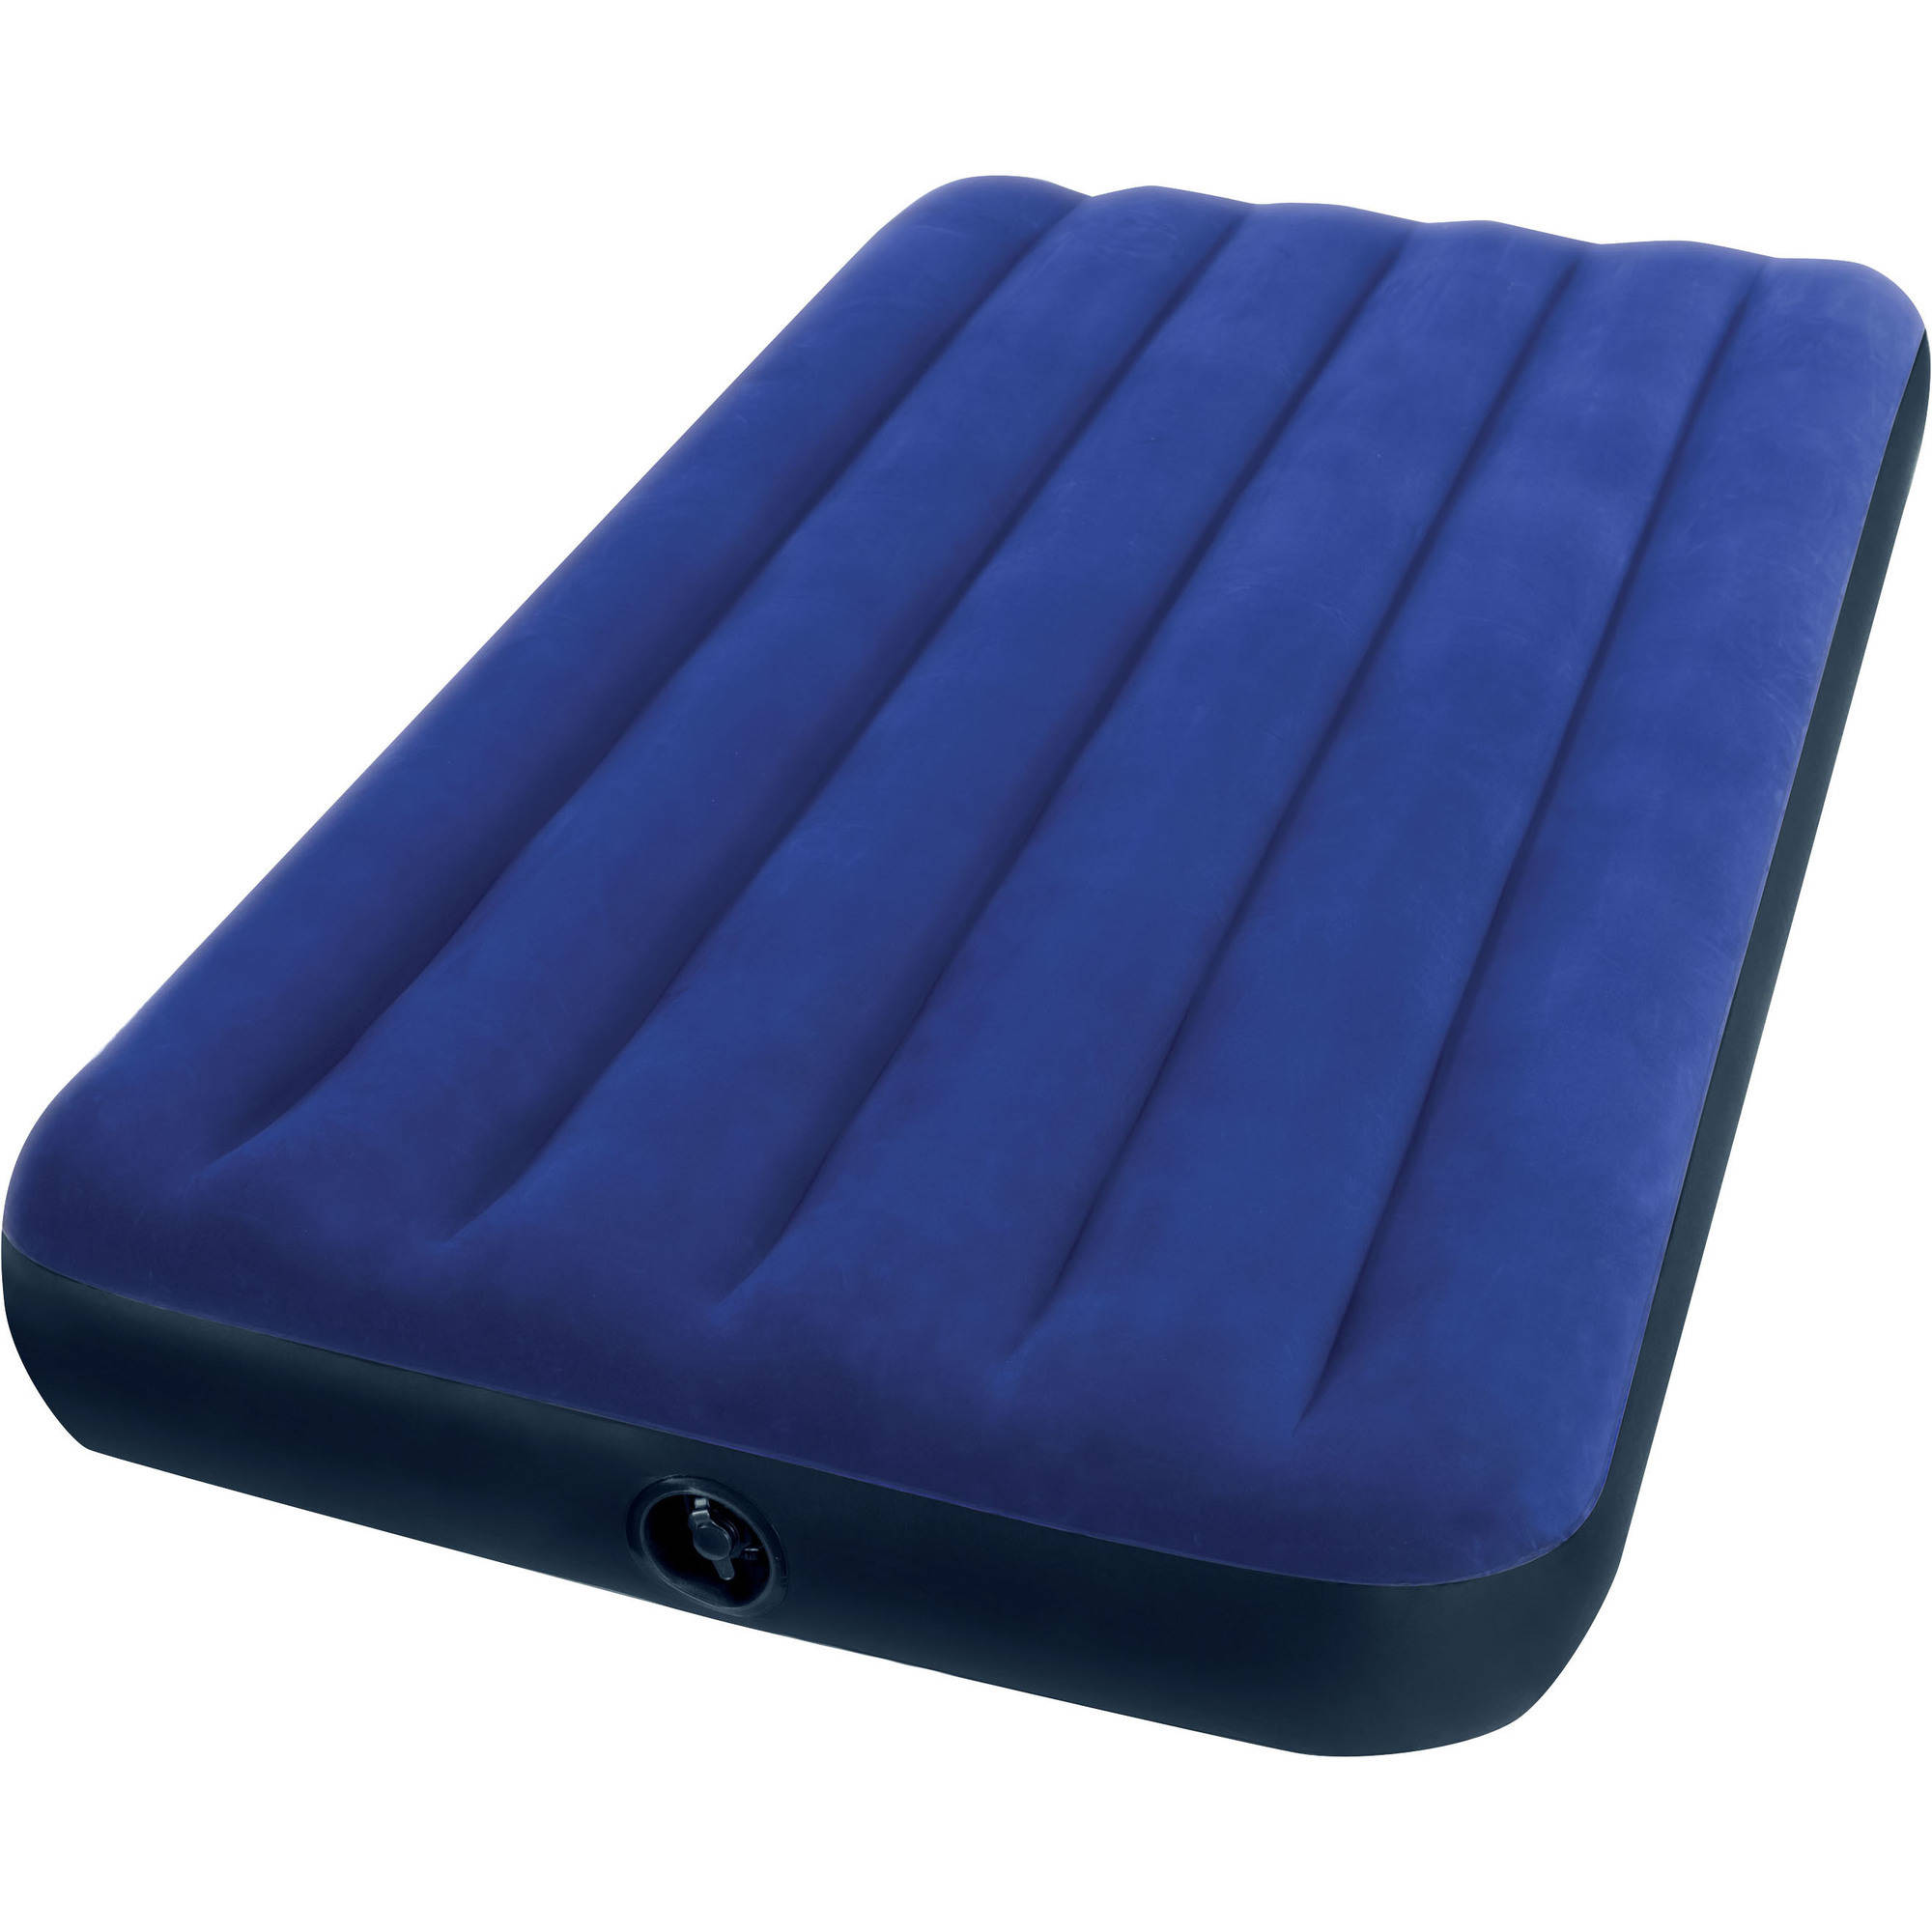 How to make use of air mattresses?